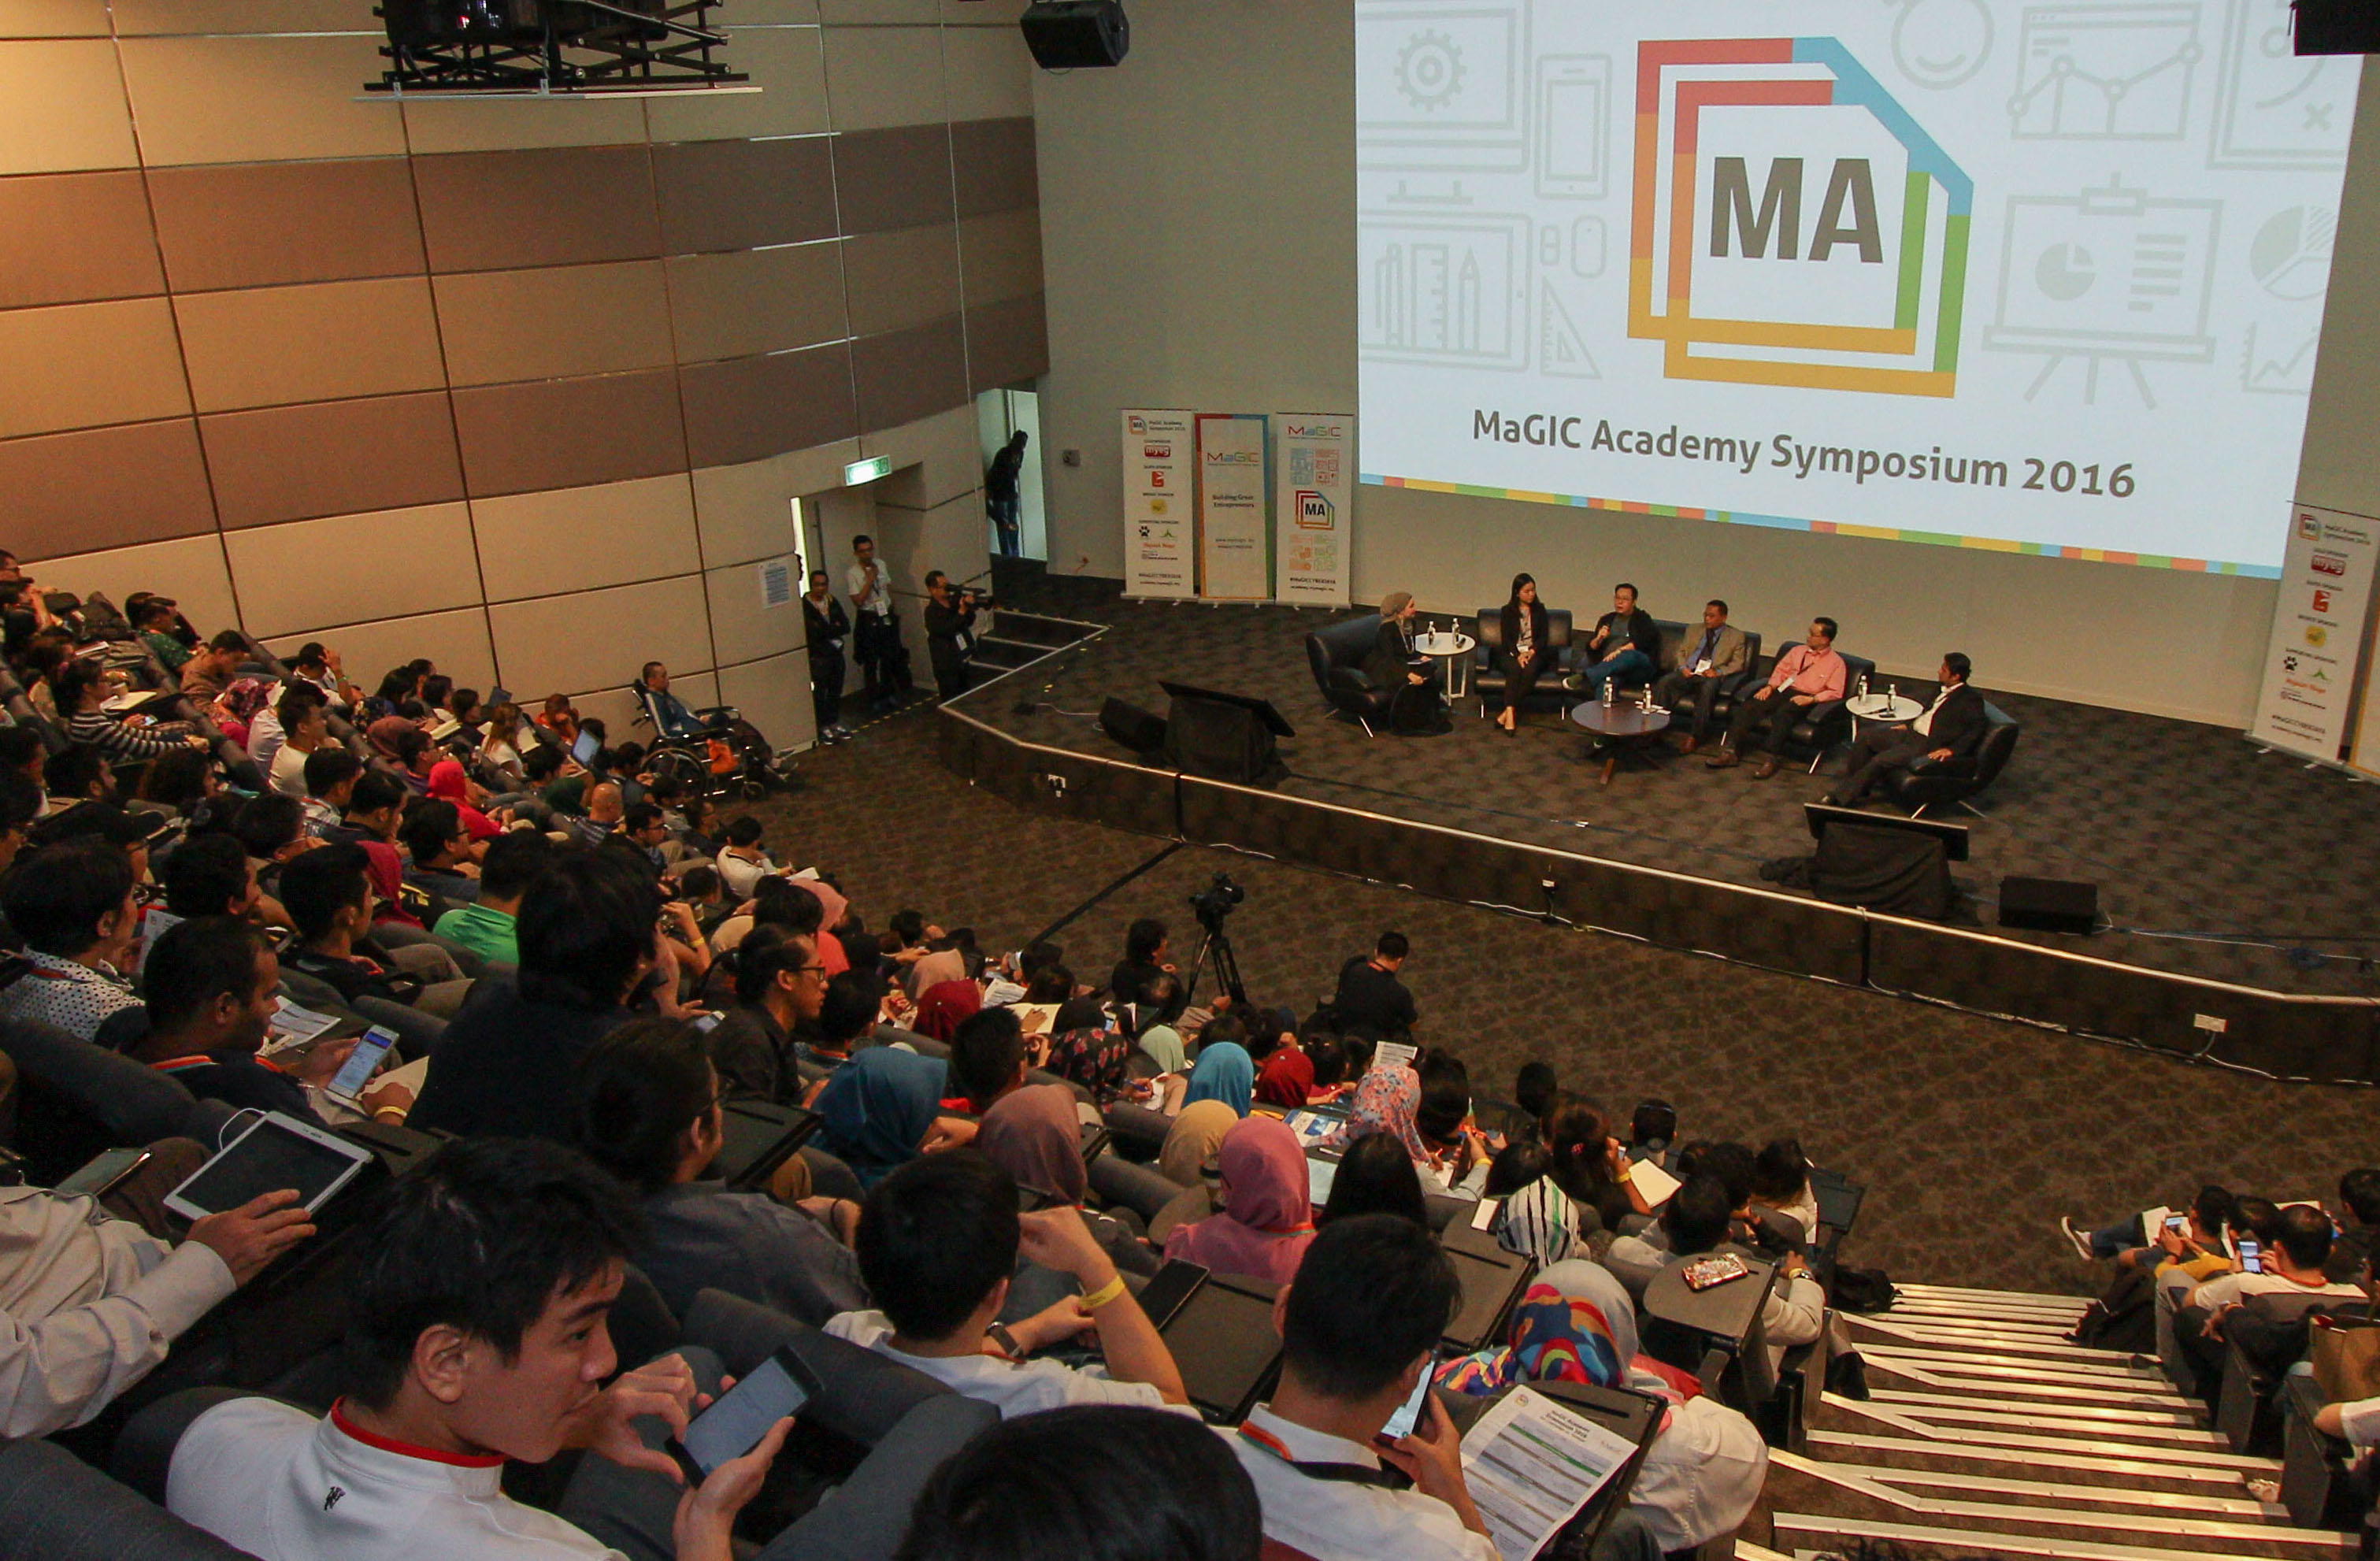 MA2016 attracted over 3,300 attendees!